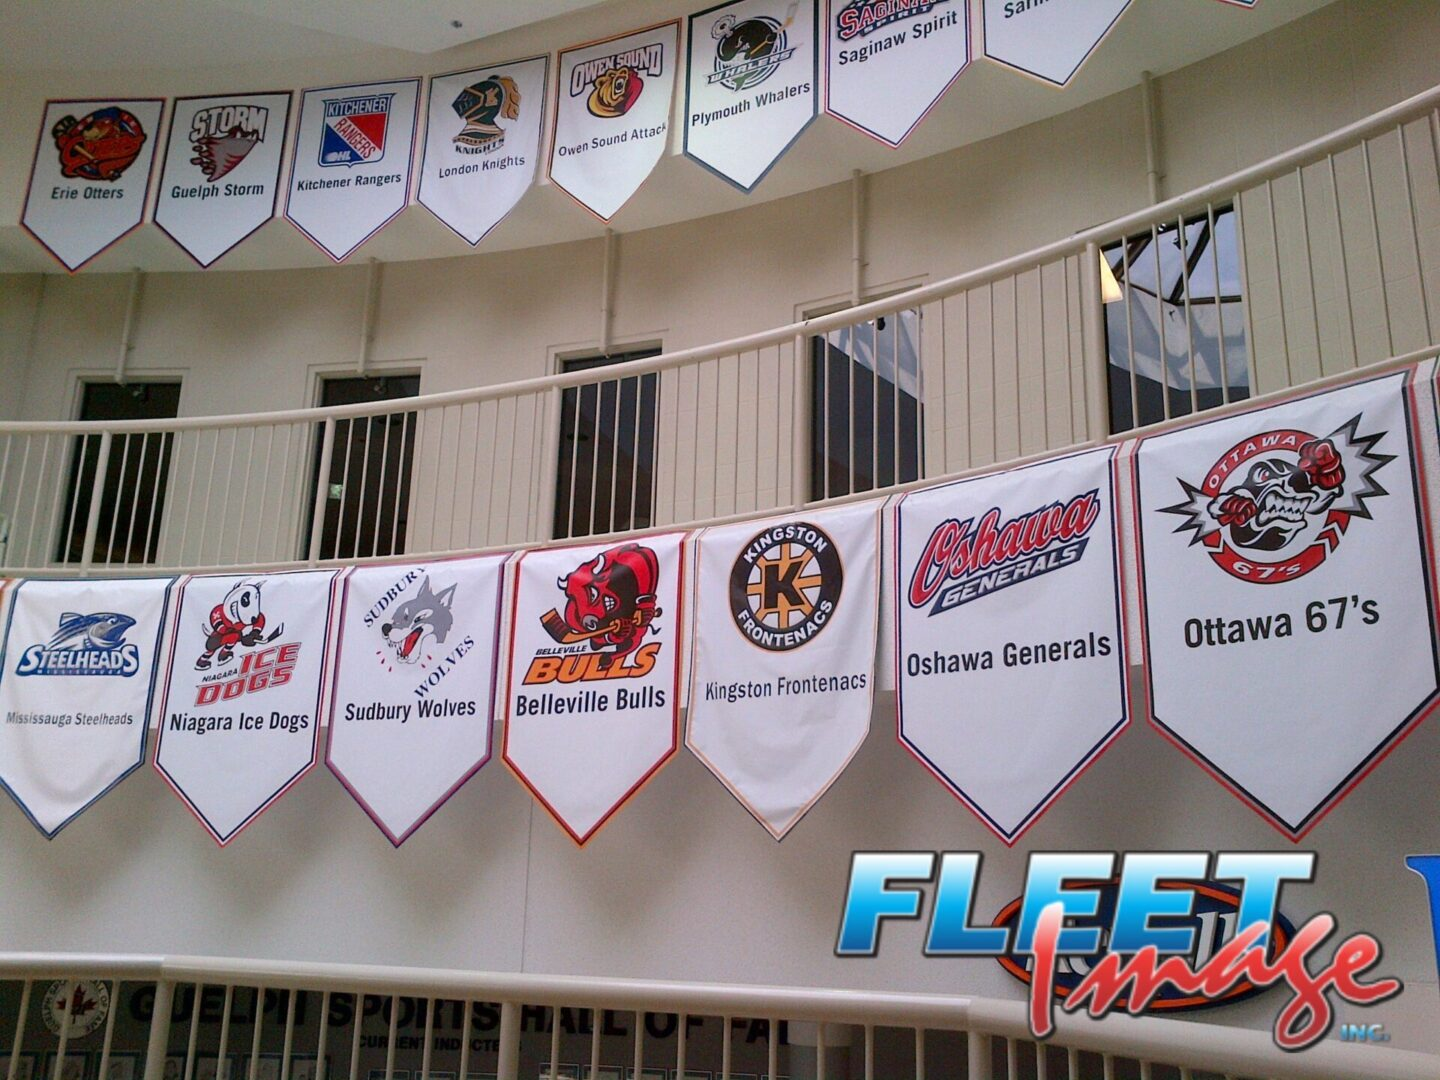 GUELPH SPORTS HALL OF FAME TEAM BANNERS